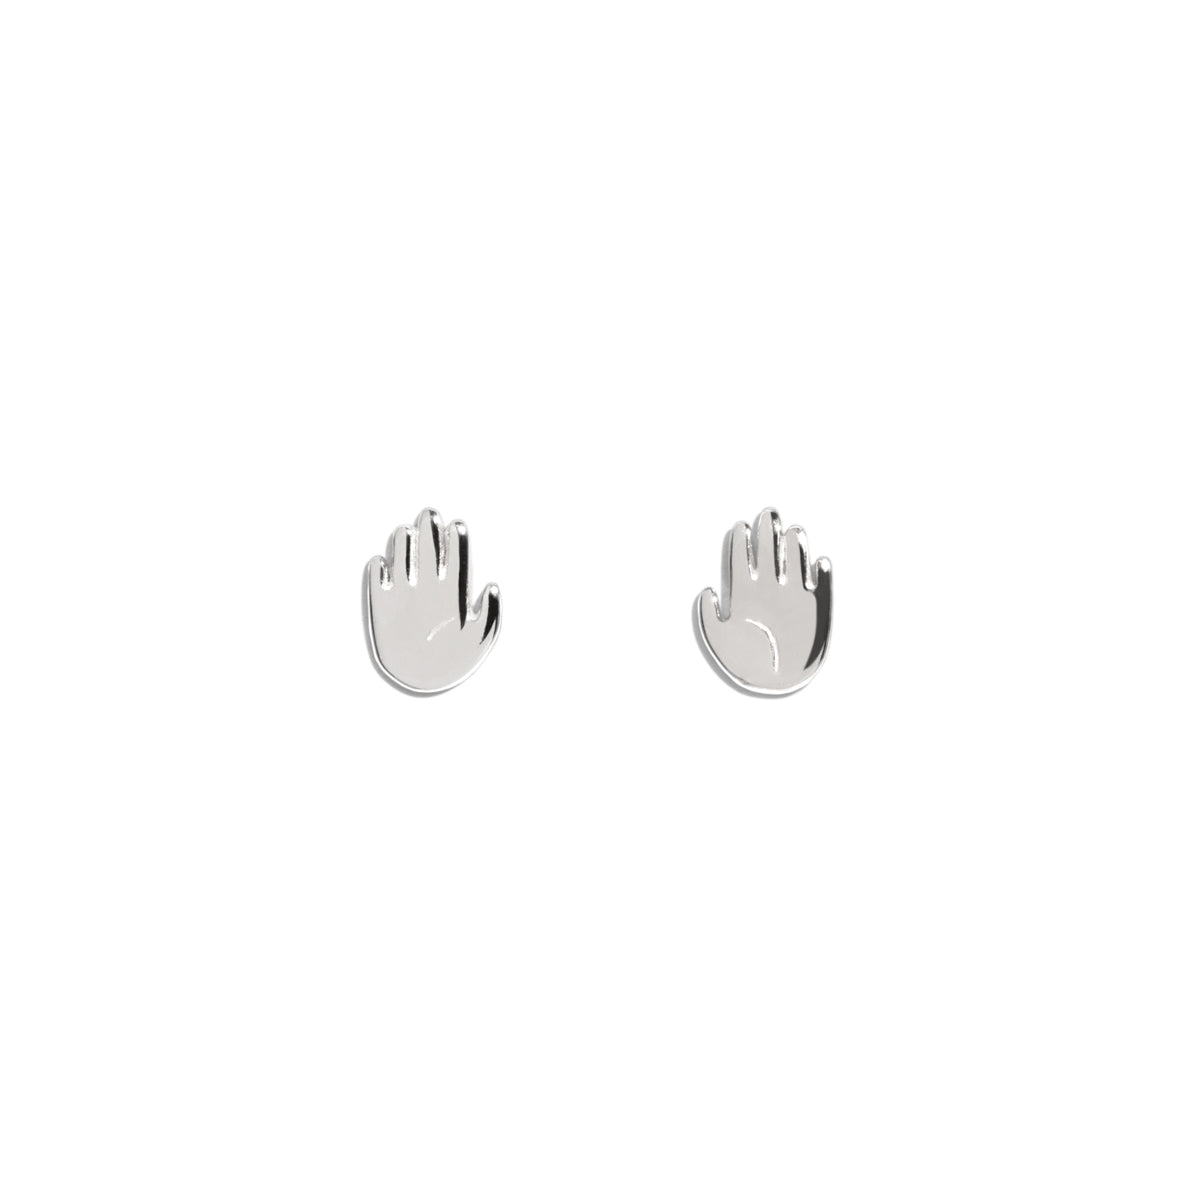 The Silver Open Hand Stud Earrings